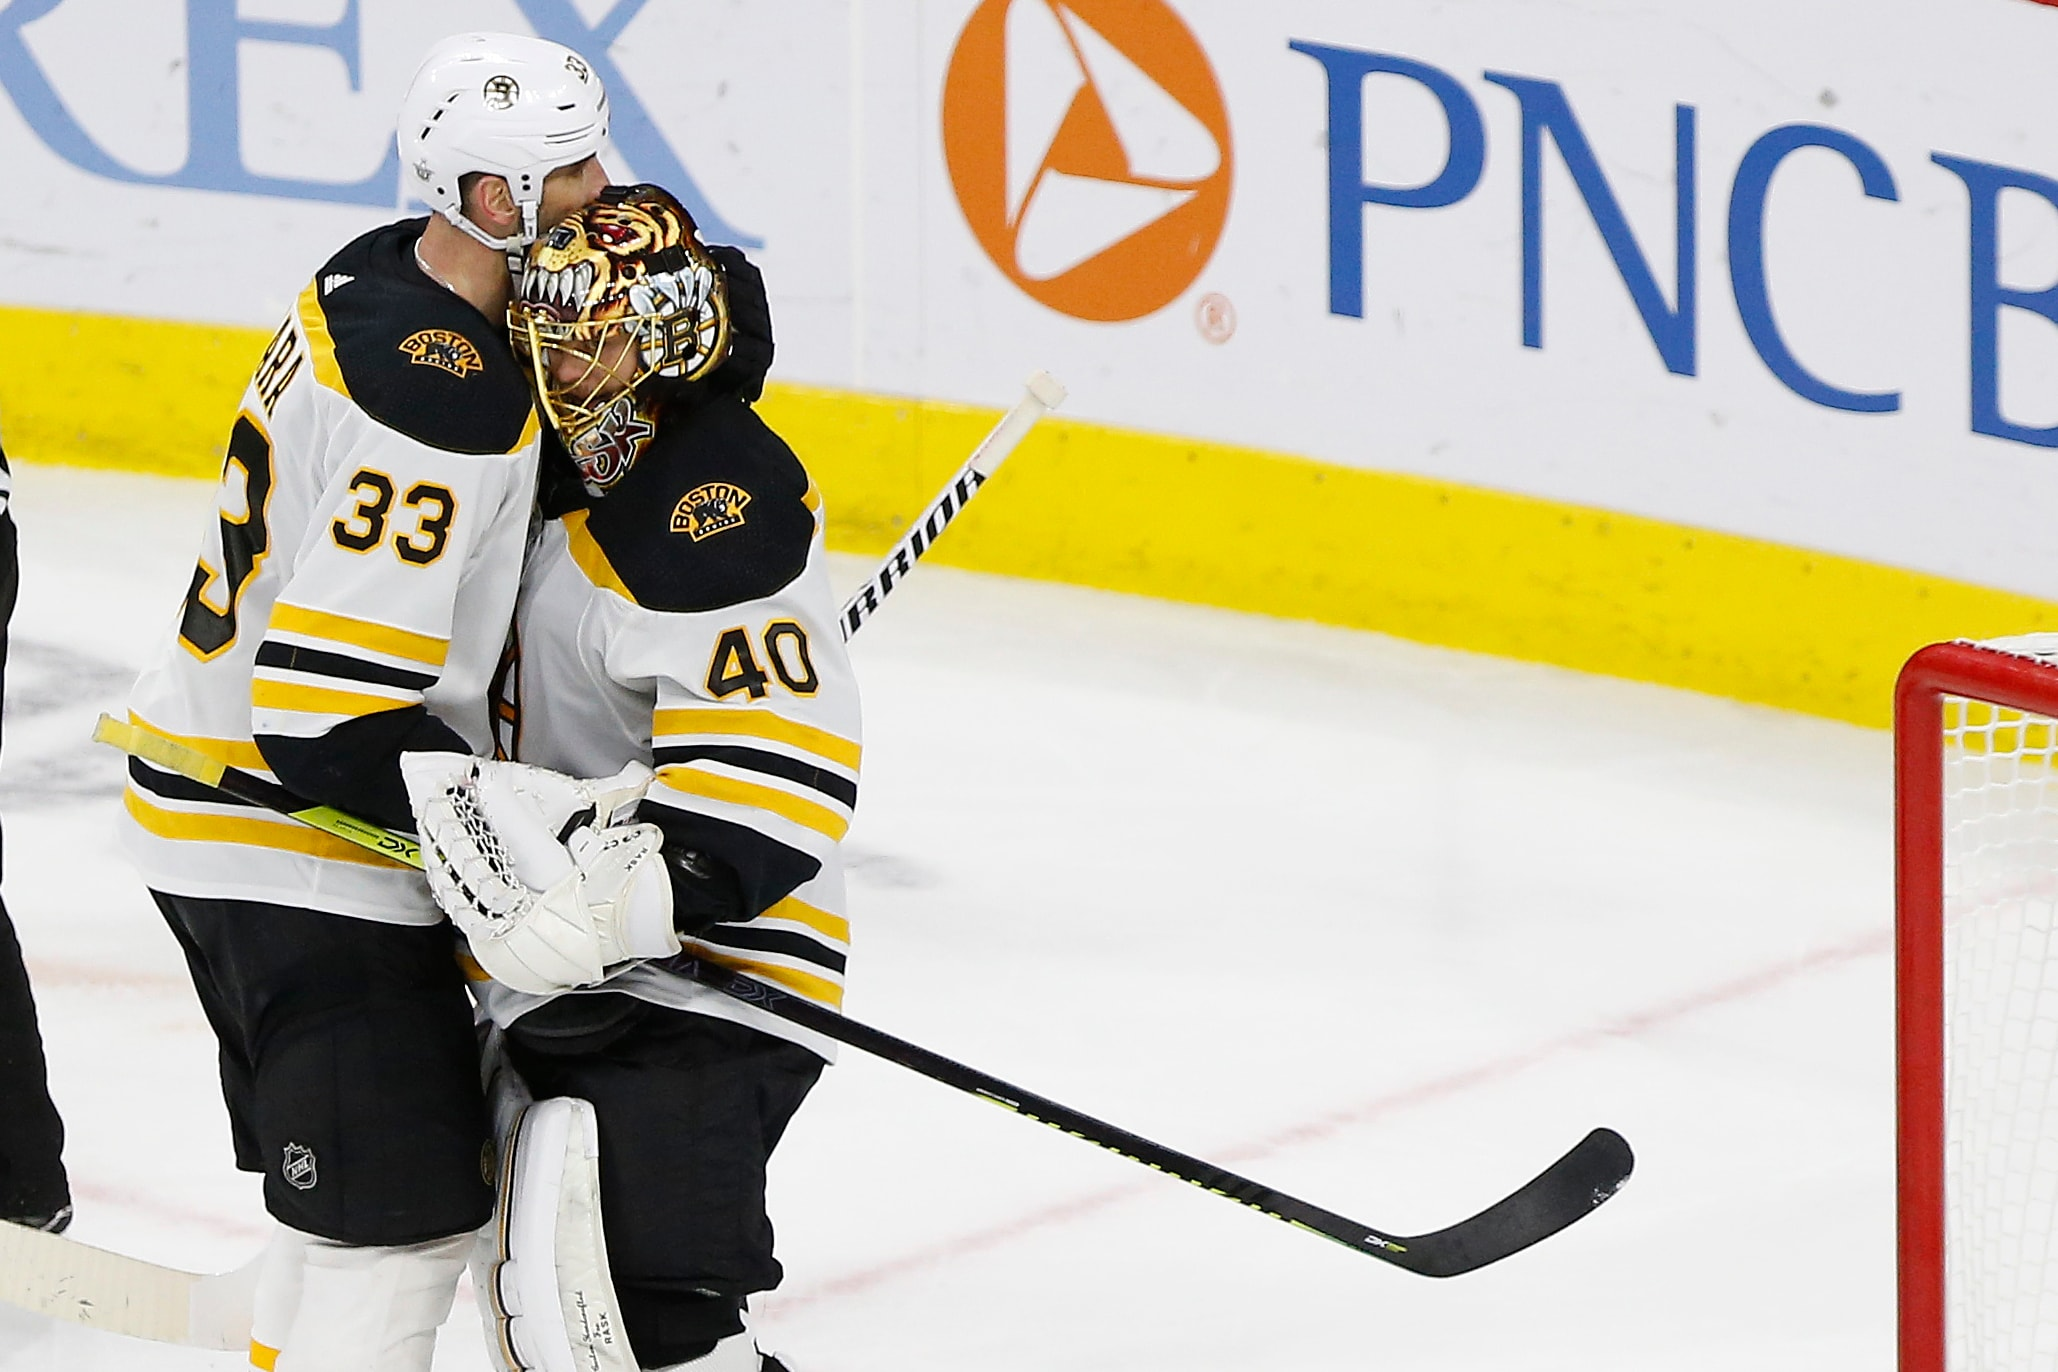 May 14, 2019; Raleigh, NC, USA; Boston Bruins goaltender Tuukka Rask (40) celebrates with Bruins defenseman Zdeno Chara (33) after their game against the Carolina Hurricanes in game three of the Eastern Conference Final of the 2019 Stanley Cup Playoffs at PNC Arena. The Bruins won 2-1 and lead the series 3-0. Mandatory Credit: Geoff Burke-USA TODAY Sports